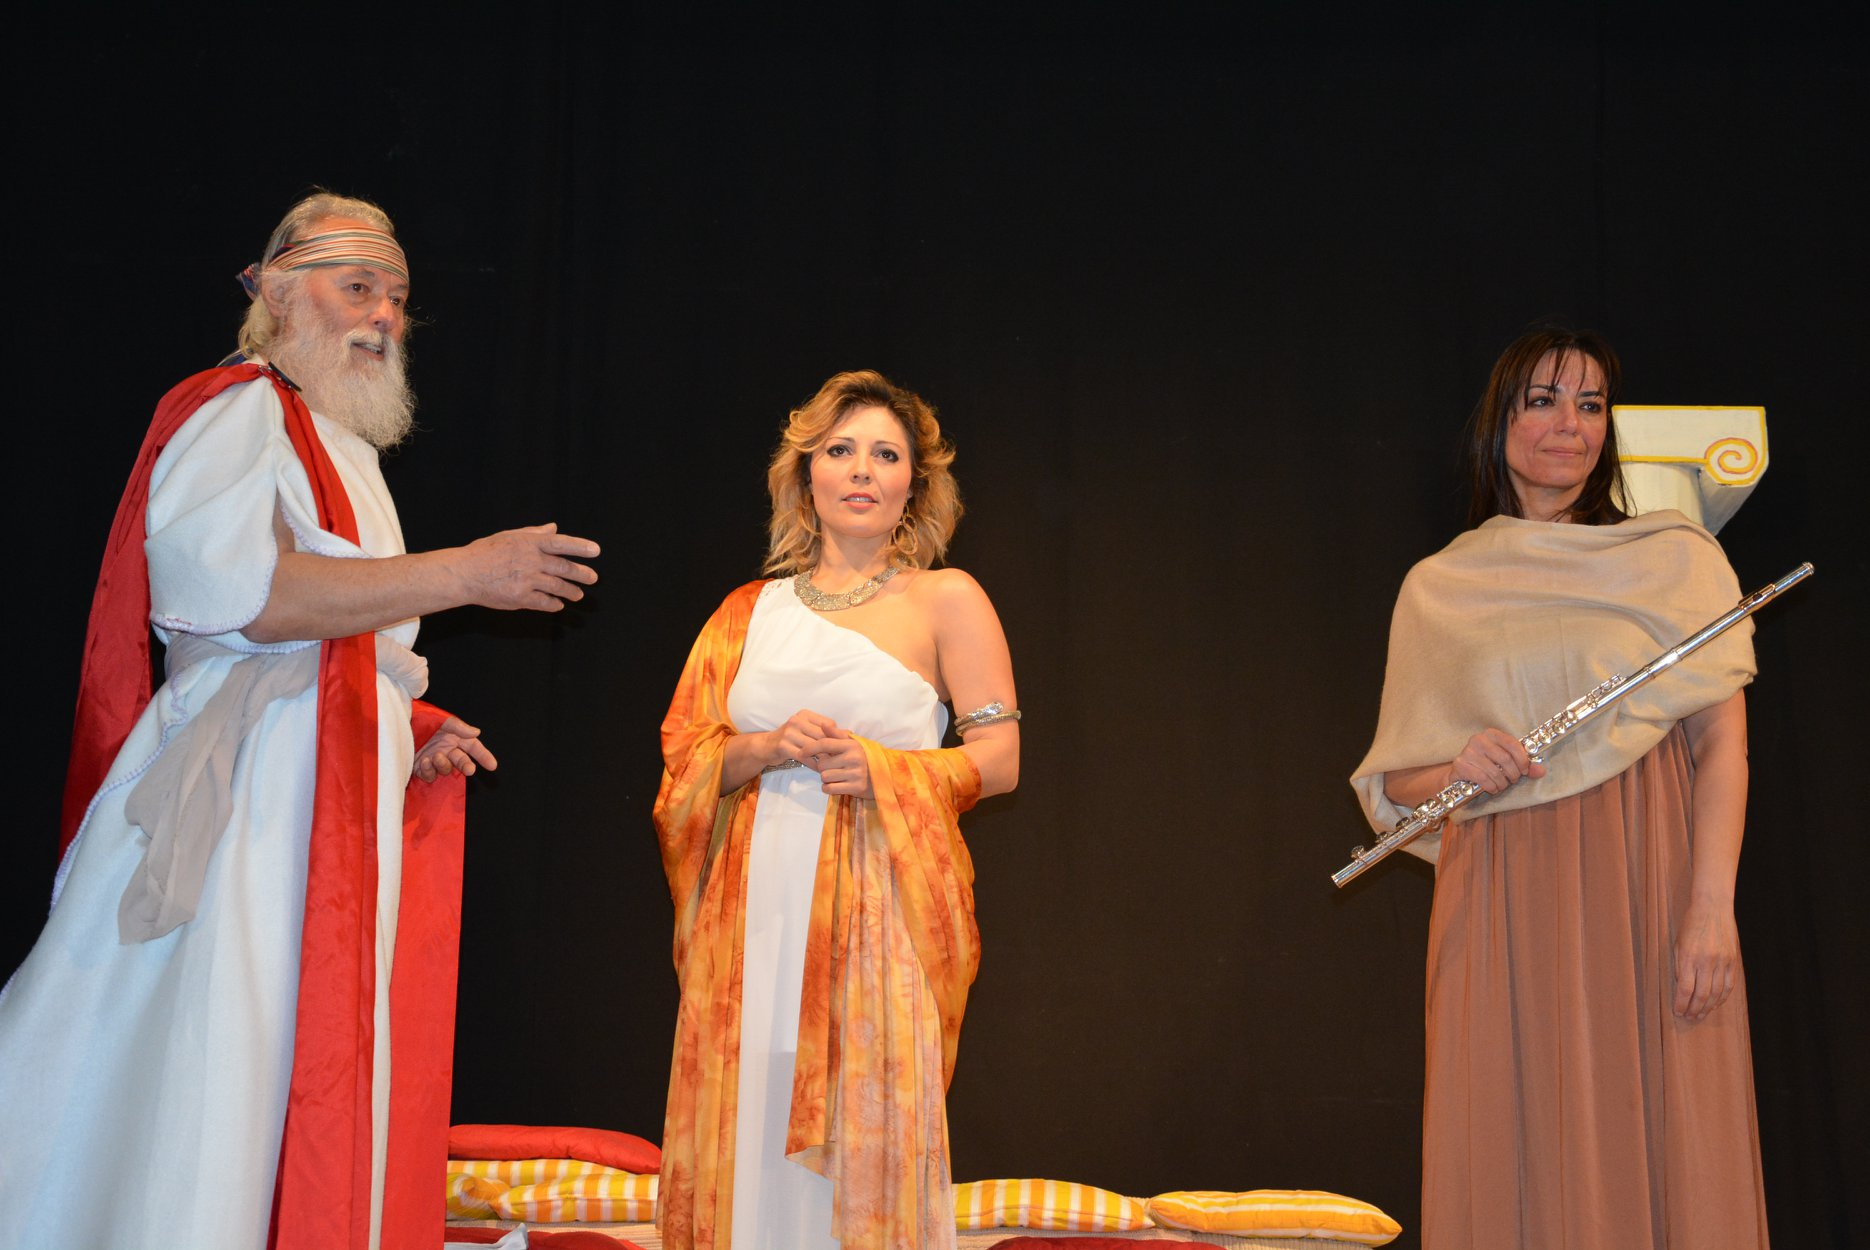 CON ROSEMARY E LAURA IN SCENA AL VALLI